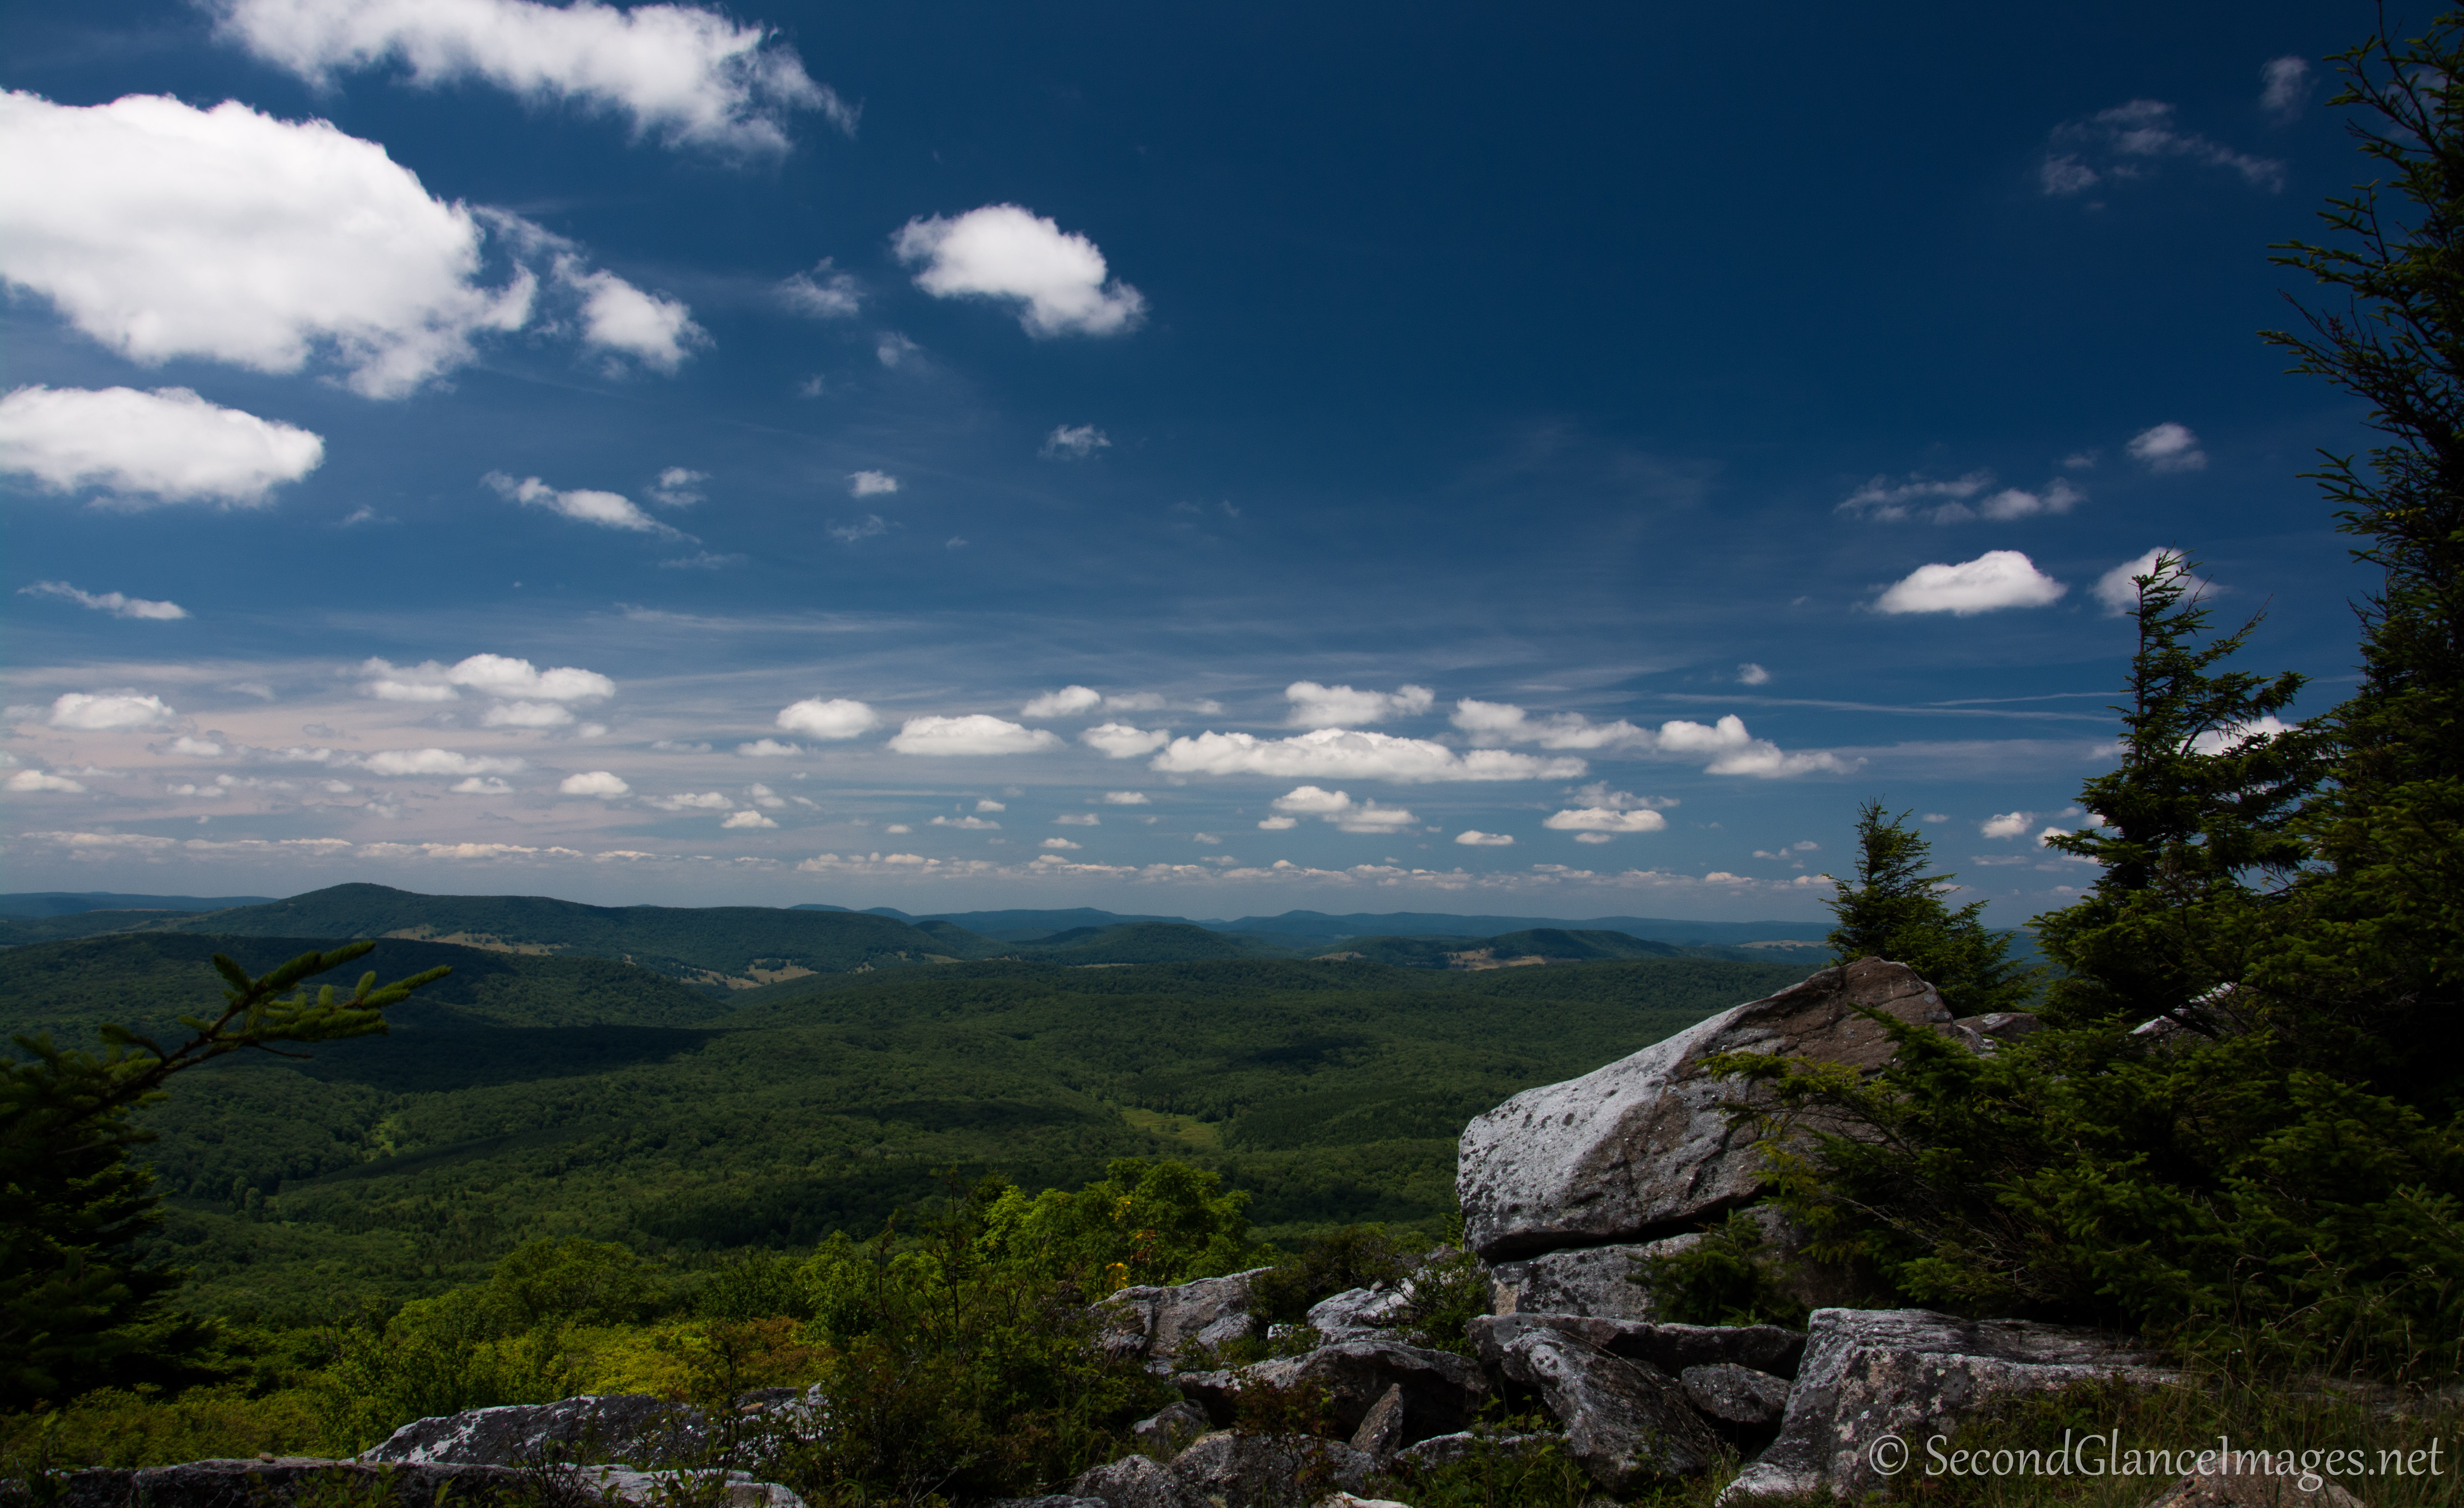 Views from the Whispering Spruce Trail ...